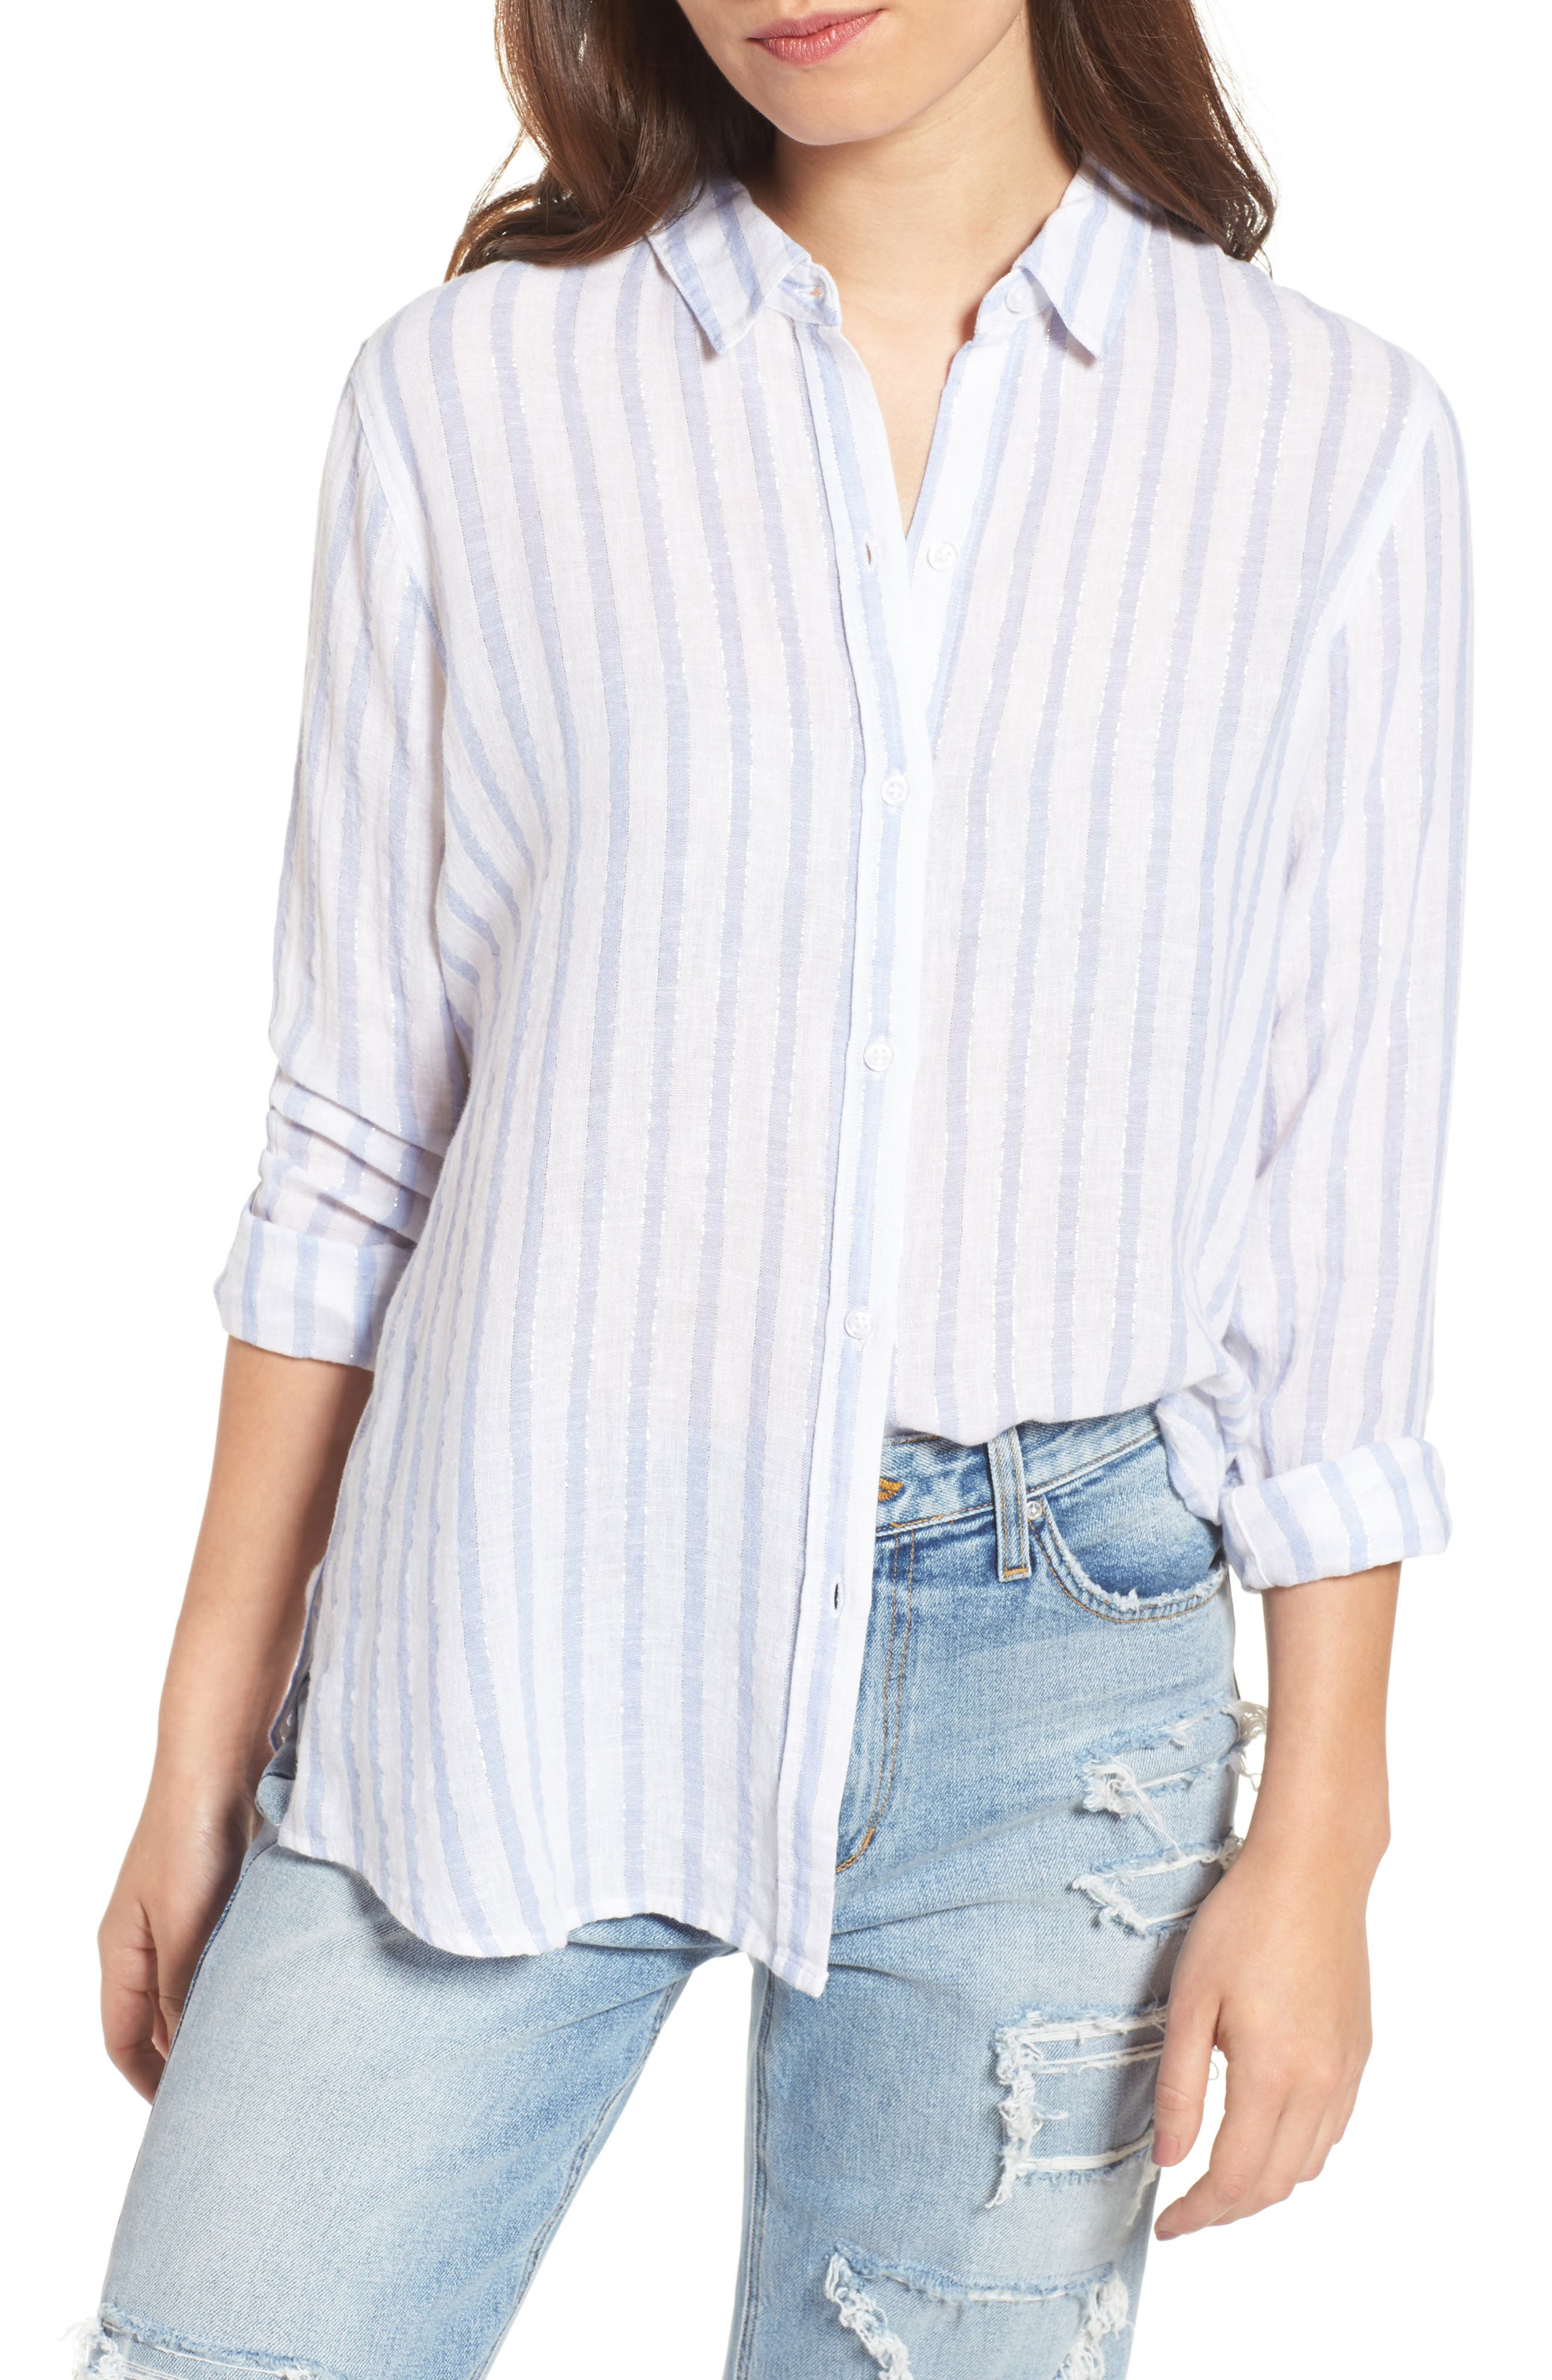 Sydney Vertical Shimmer Stripe Linen Blend Shirt,                         Main,                         color, 473